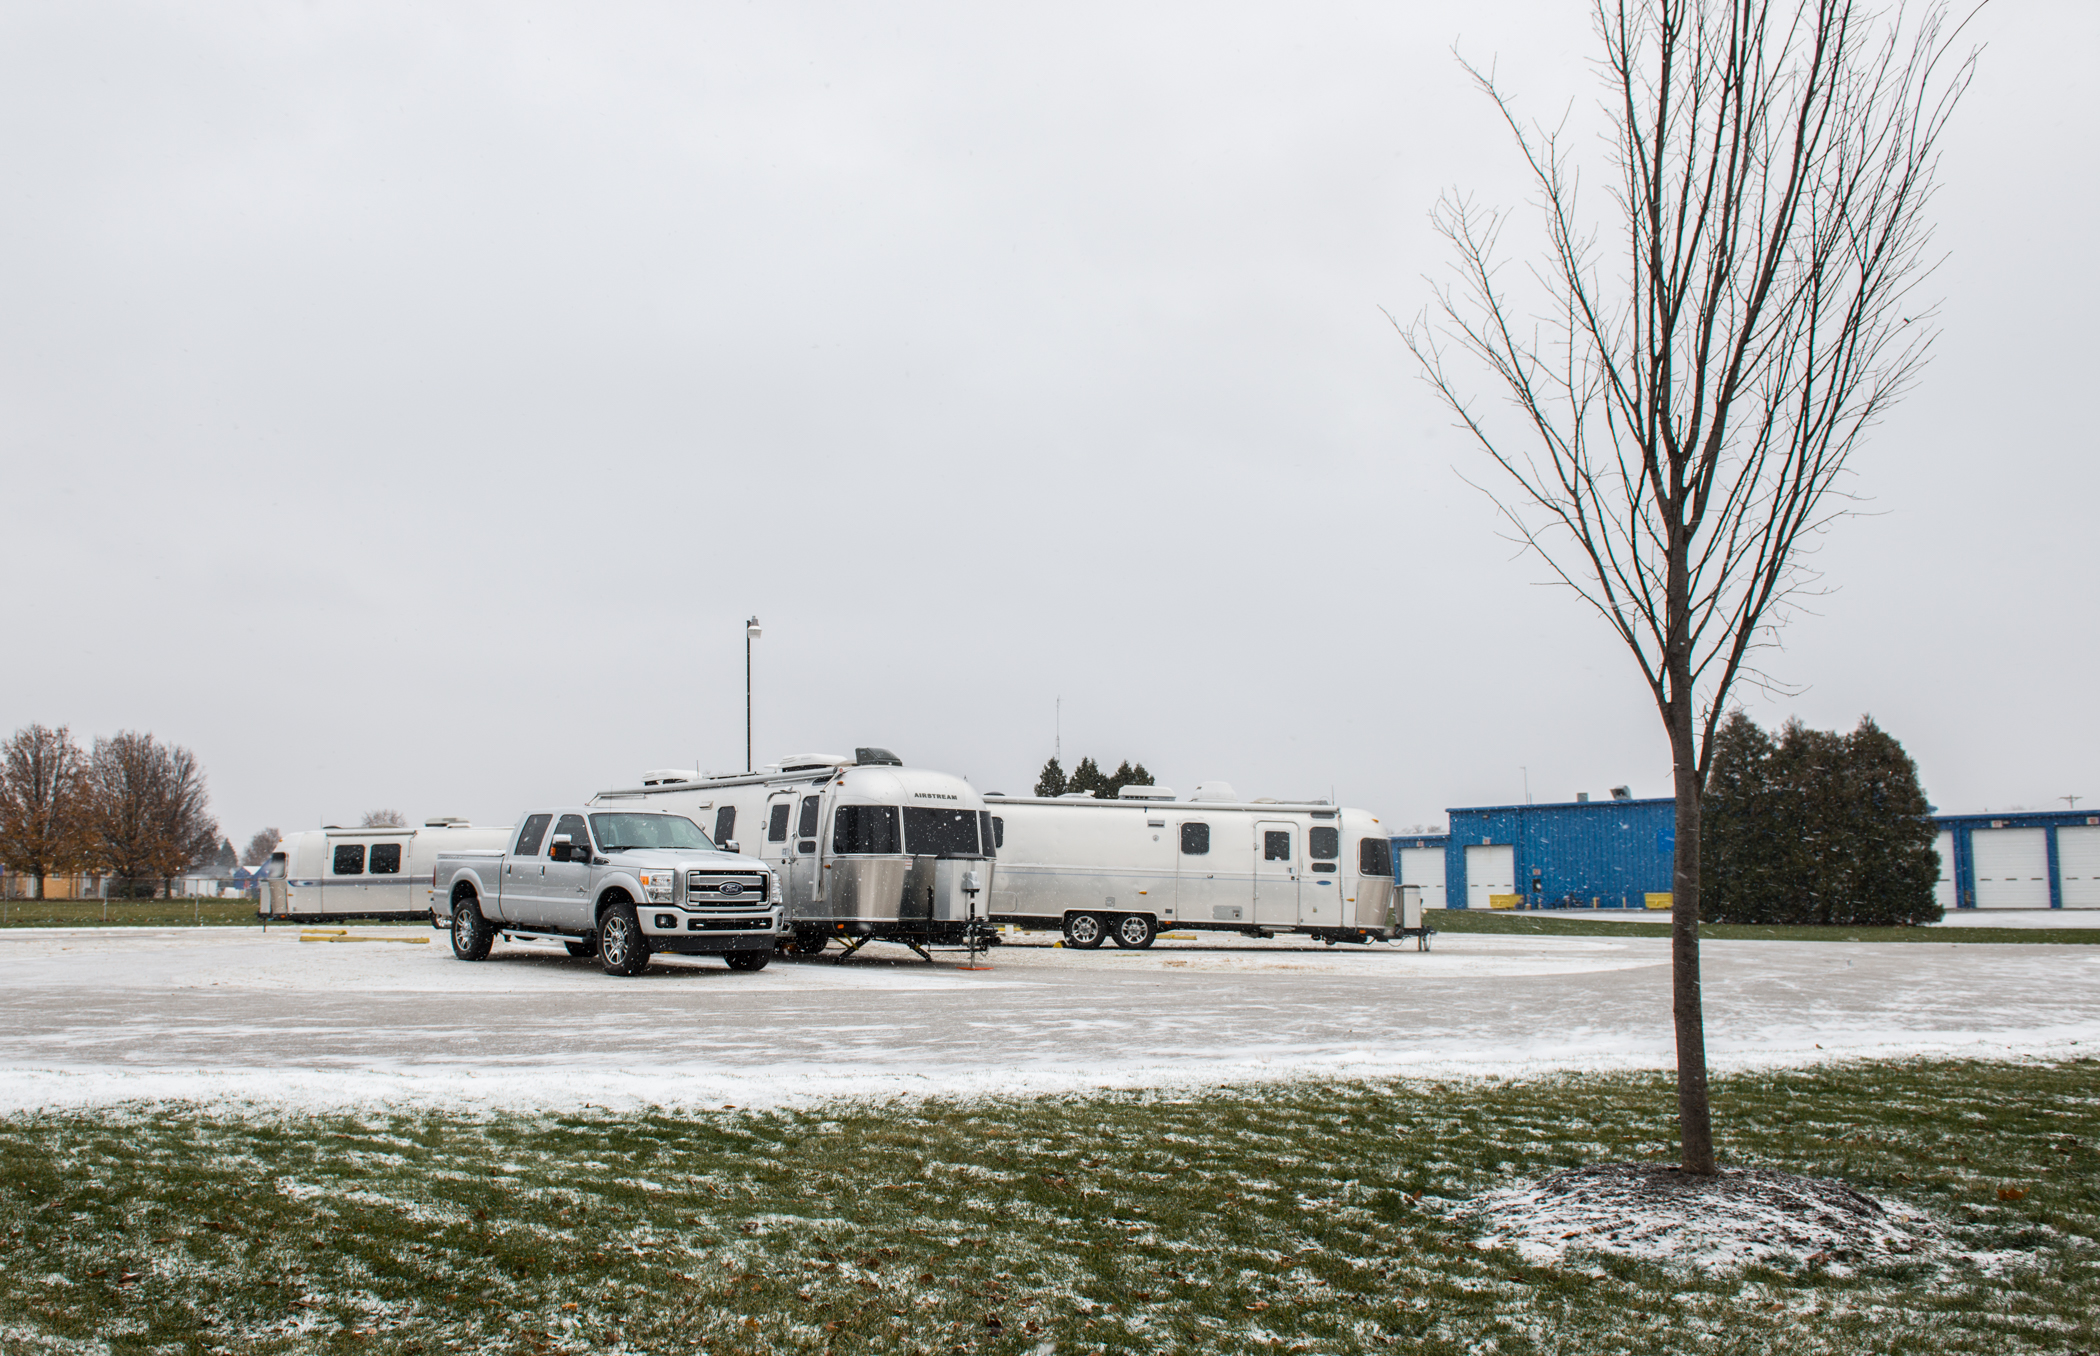 The only campers in a wintry Airstream Terraport